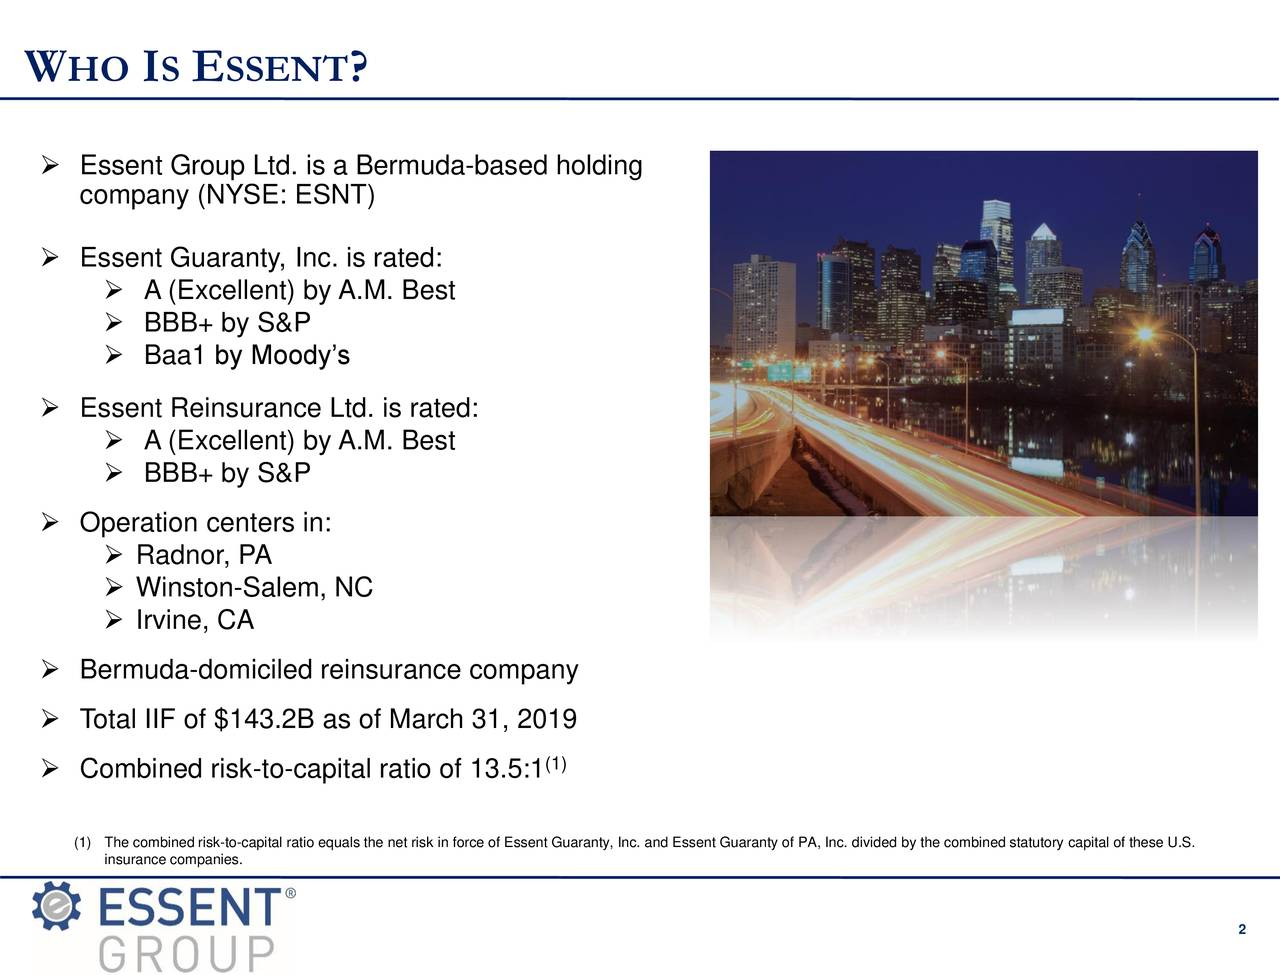  Essent Group Ltd. is a Bermuda-based holding company (NYSE: ESNT)  Essent Guaranty, Inc. is rated:  A (Excellent) by A.M. Best  BBB+ by S&P  Baa1 by Moody's  Essent Reinsurance Ltd. is rated:  A (Excellent) by A.M. Best  BBB+ by S&P  Operation centers in:  Radnor, PA  Winston-Salem, NC  Irvine, CA  Bermuda-domiciled reinsurance company  Total IIF of $143.2B as of March 31, 2019  Combined risk-to-capital ratio of 13.5:1 (1insurance companies.to-capital ratio equals the net risk in force of Essent Guaranty, Inc. and Essent Guaranty of PA, Inc. divided by the combined statutory capital of these U.S. 2